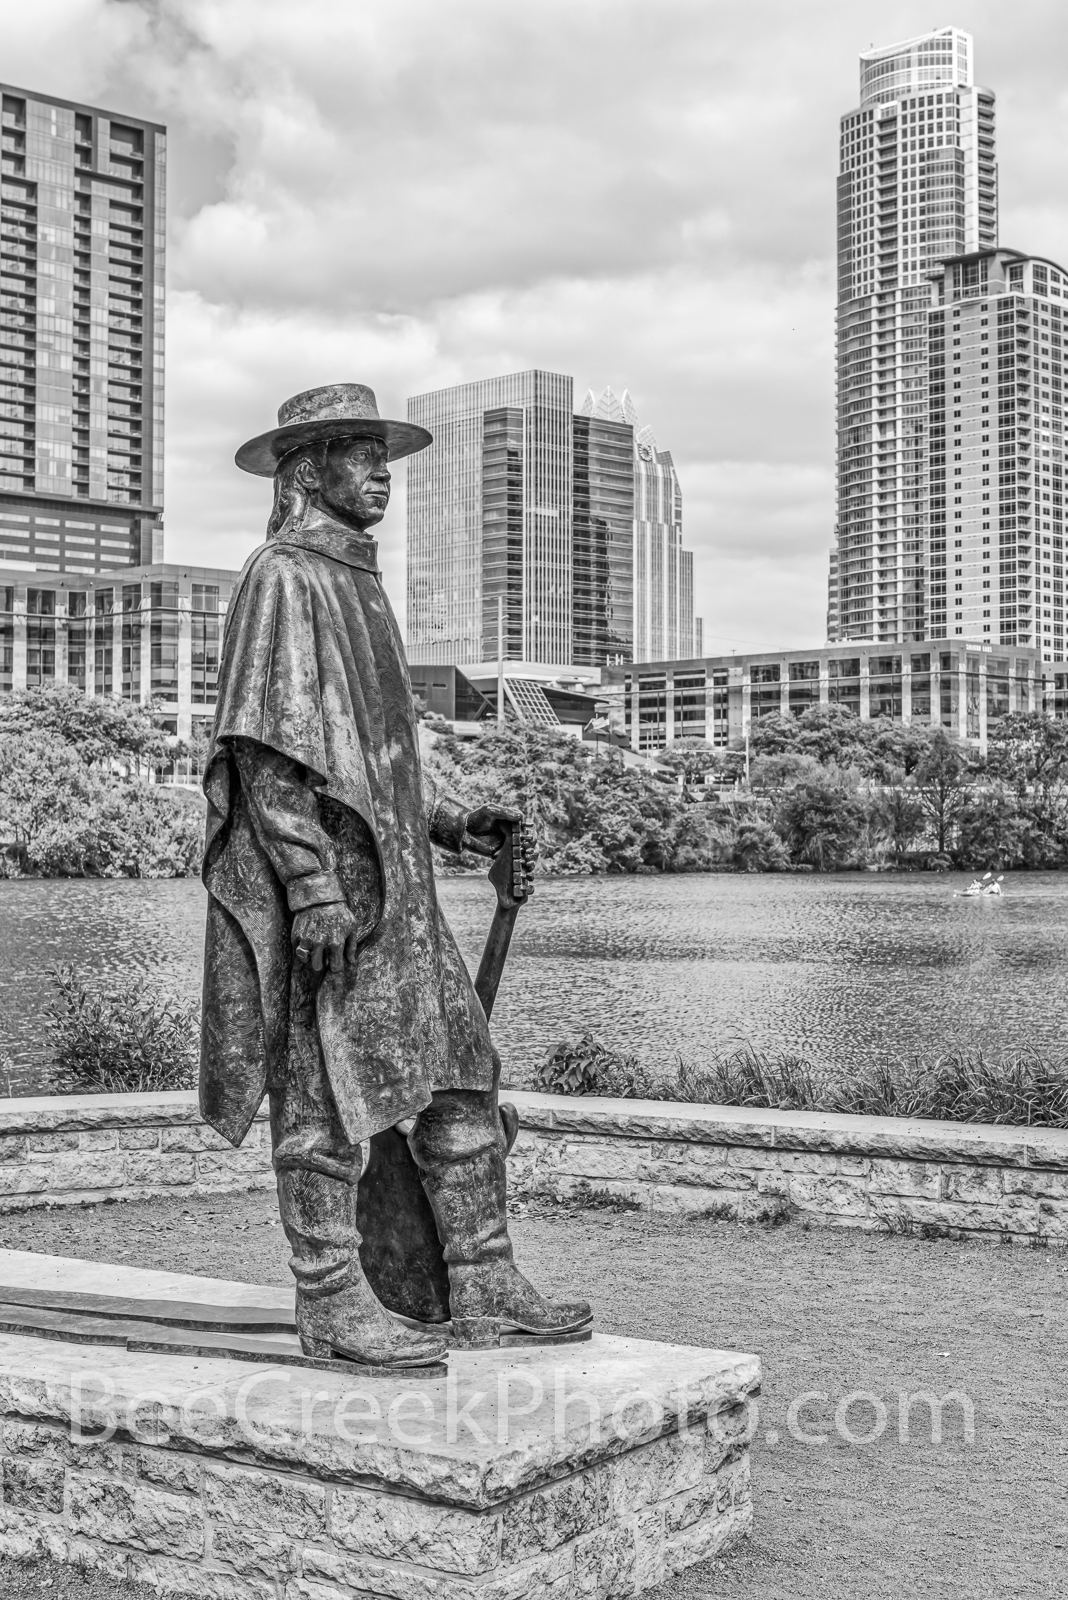 Austin Stevie Ray Vaughan Statue Butler Trail  - Stevie Ray Vaughan statue in black and white along Lady Bird Lake from the Butler...